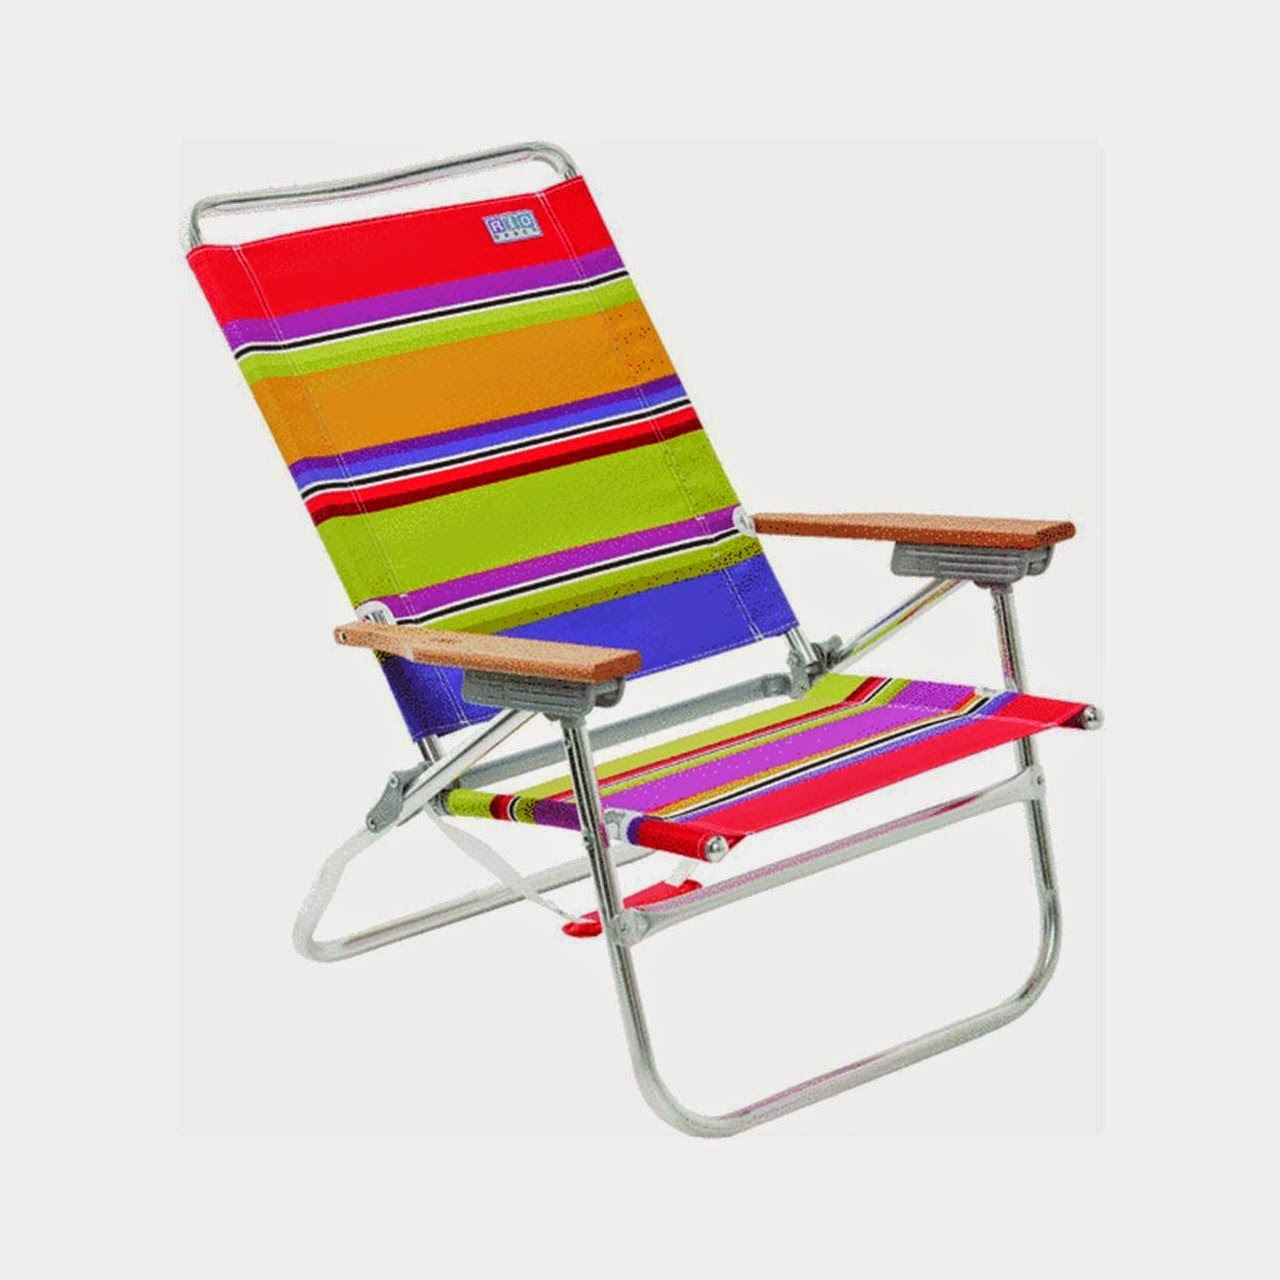 cheap beach chairs: rio beach chairs